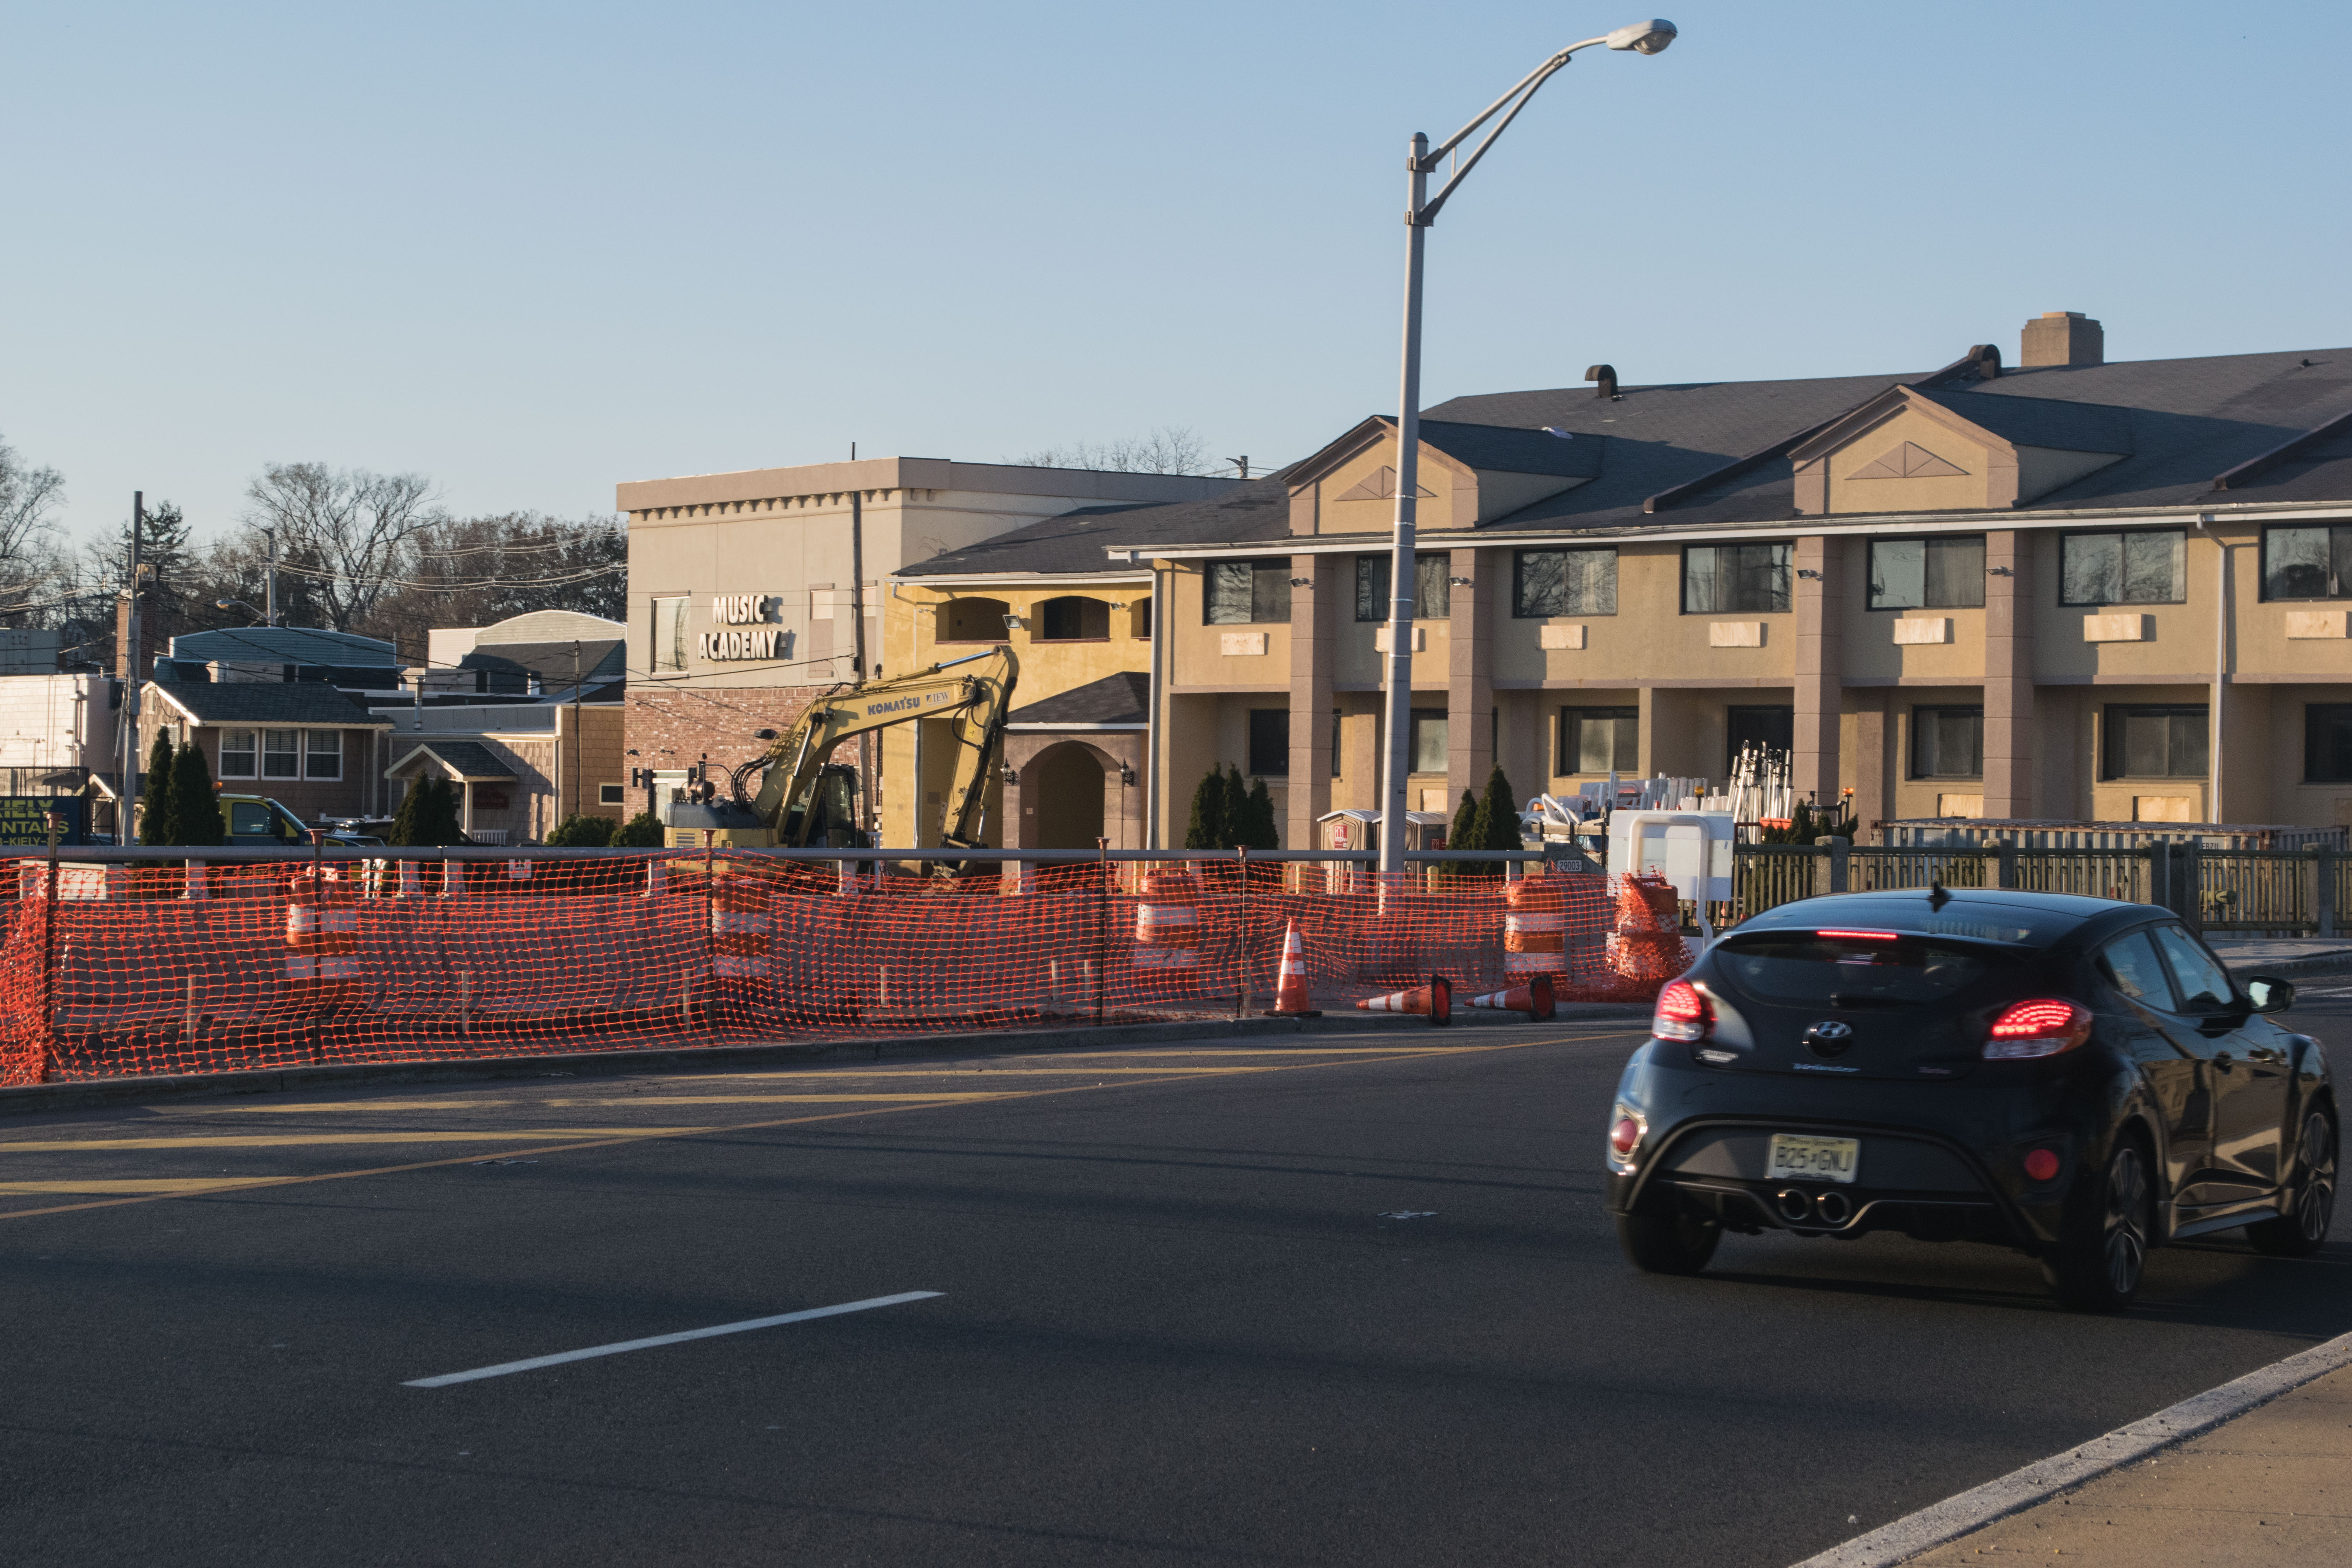 The entrance to downtown Toms River under construction, with the former Red Carpet Motel in the background, April 1, 2019. (Photo: Daniel Nee)